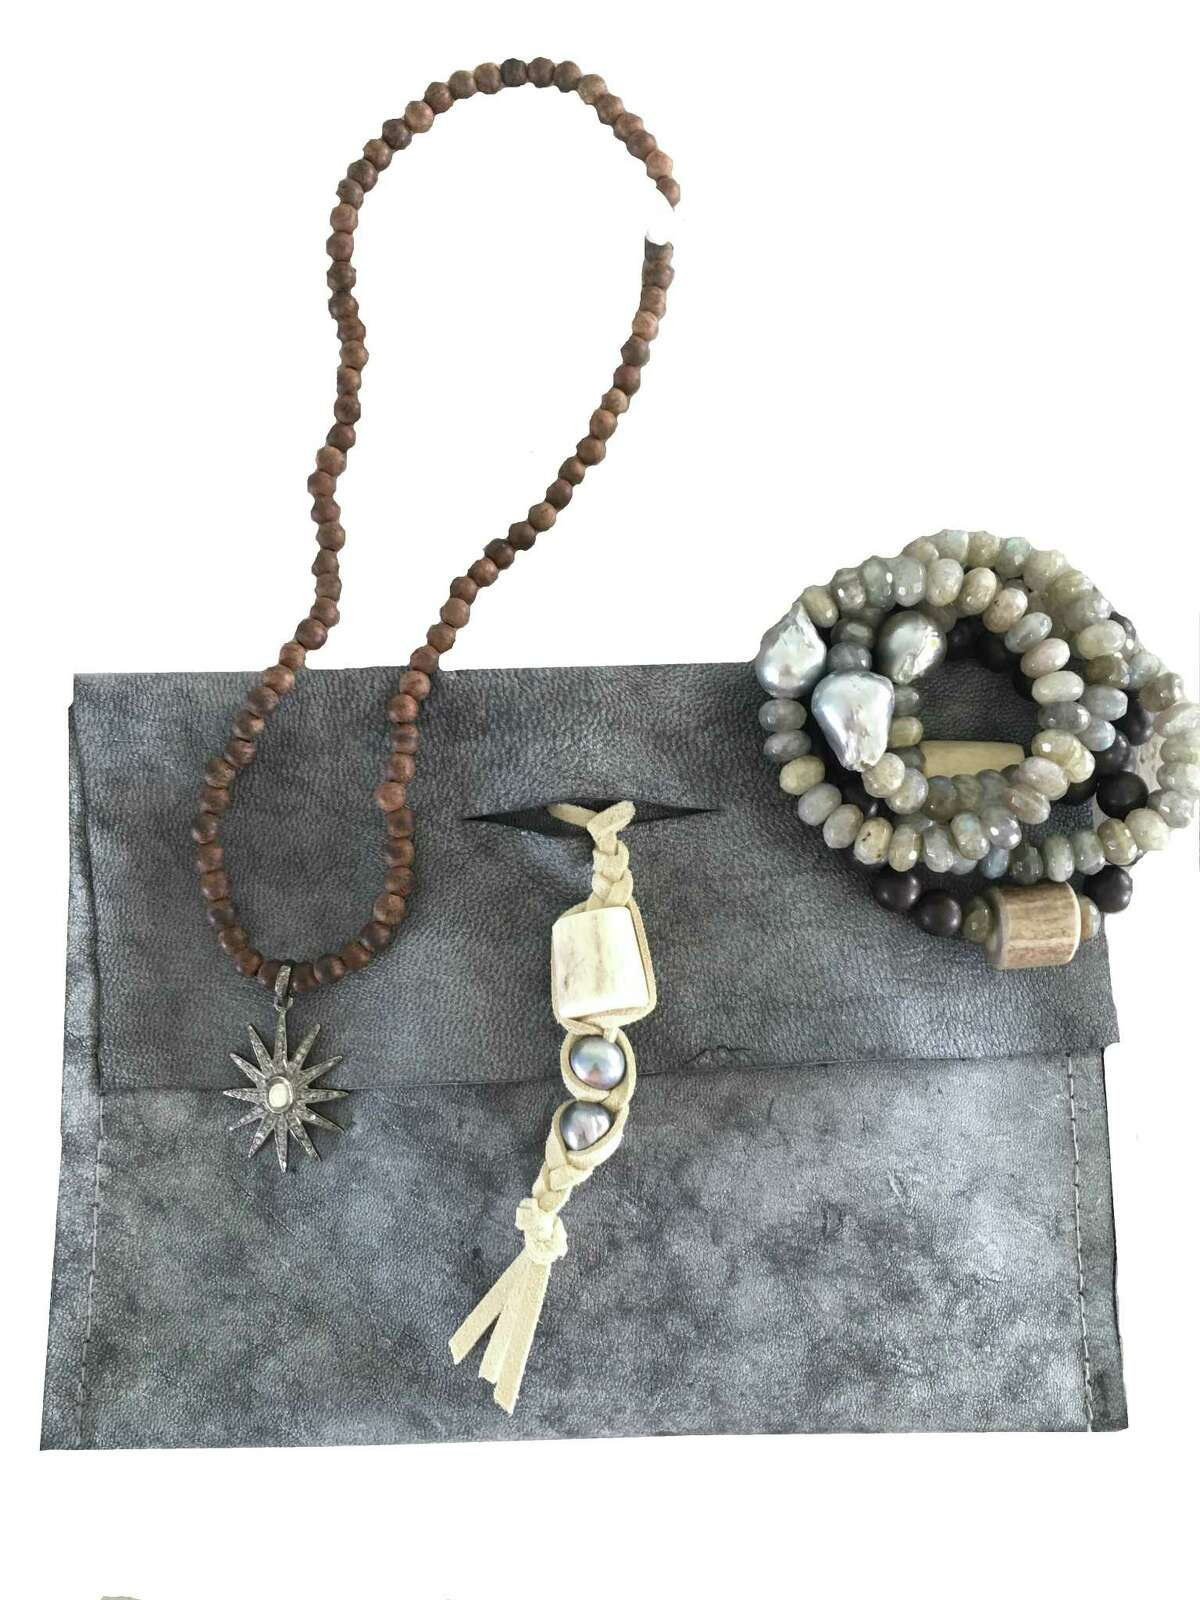 Houston designer Page Gregory Matthews makes leather bags and jewelry.